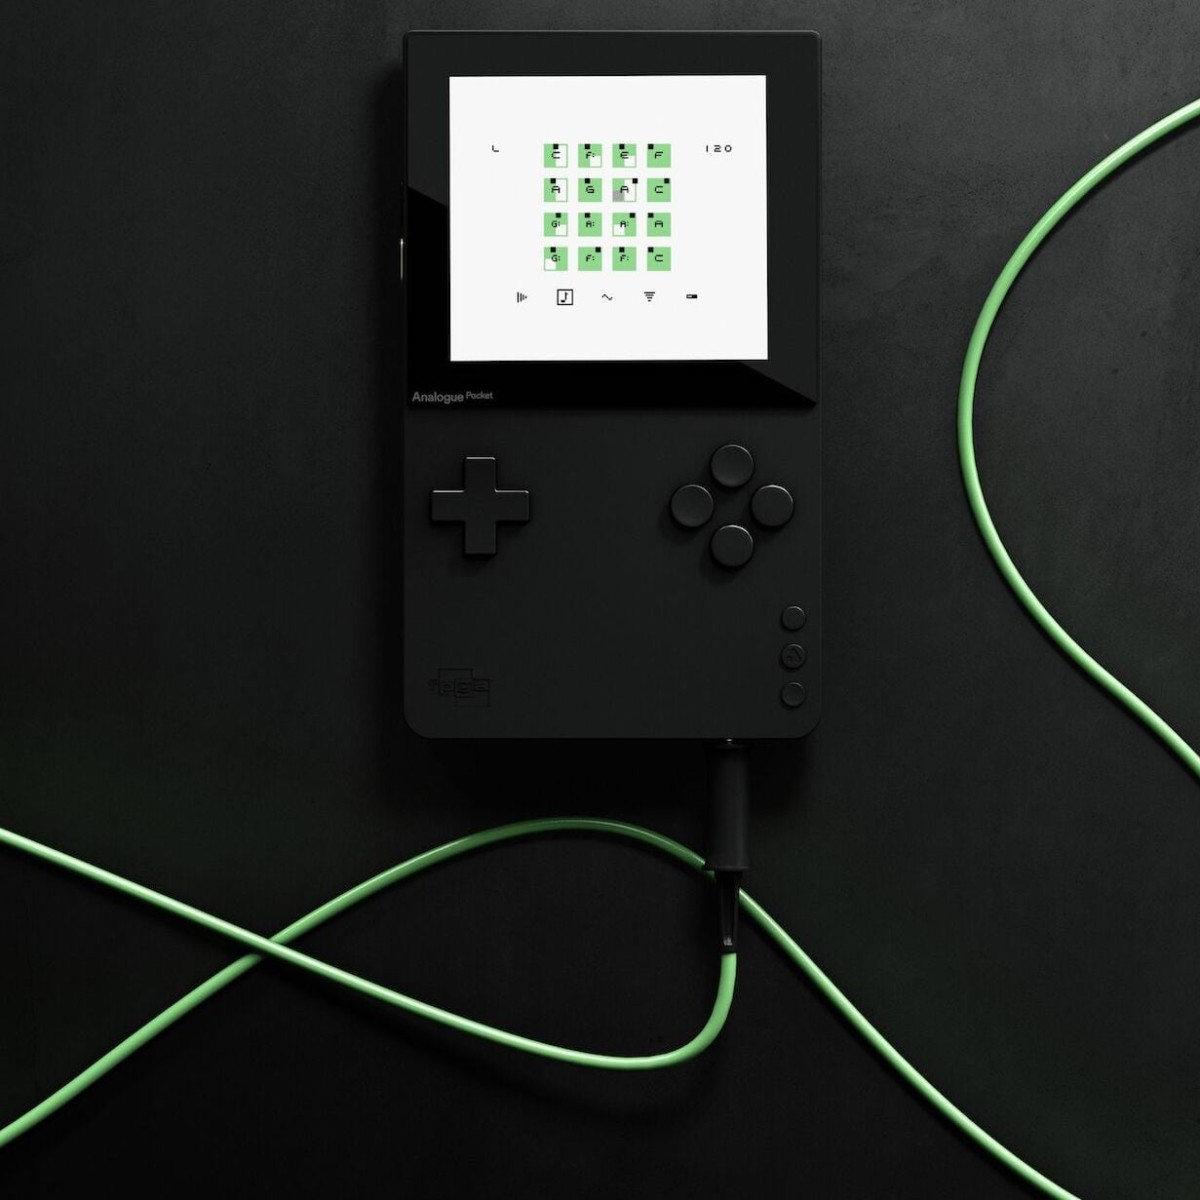 Analogue Pocket Handheld Video Game System even has a built-in audio sequencer and synthesizer